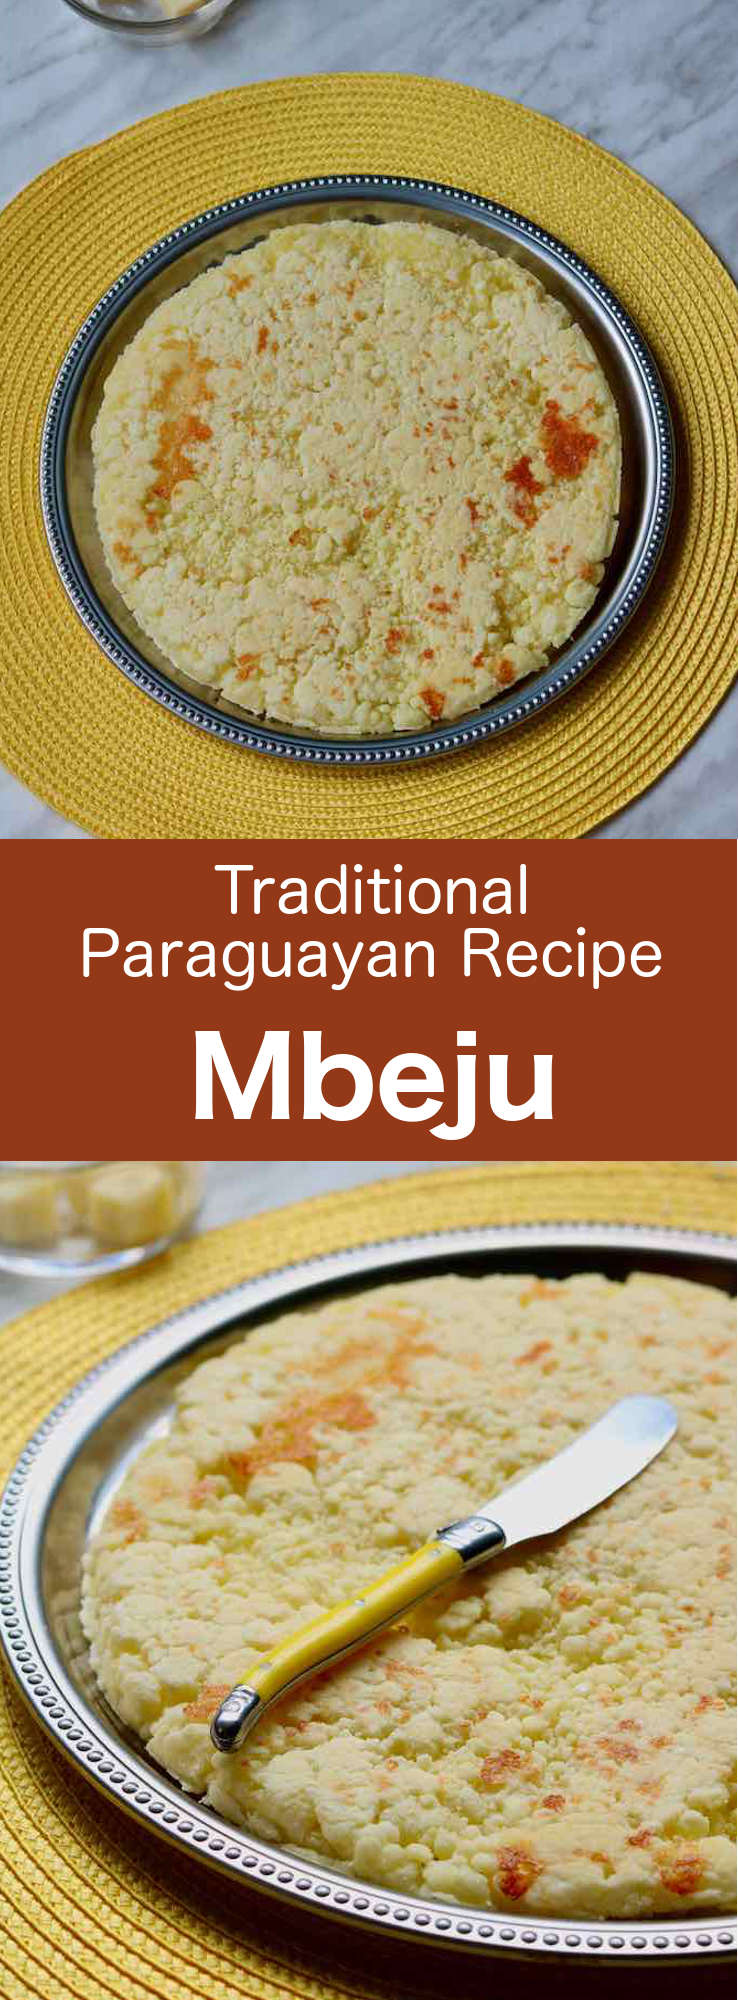 Mbejú is a Guarani dish that is popular in Paraguay and northern Argentina. This recipe, that is prepared with tapioca flour, corn flour and cheese, is often served for breakfast. #Paraguay #ParaguayanCuisine #ParaguayanRecipe #LatinAmericanCuisine #LatinAmericanRecipe #SouthAmericanCuisine #SouthAmericanRecipe #WorldFlavors #196flavors